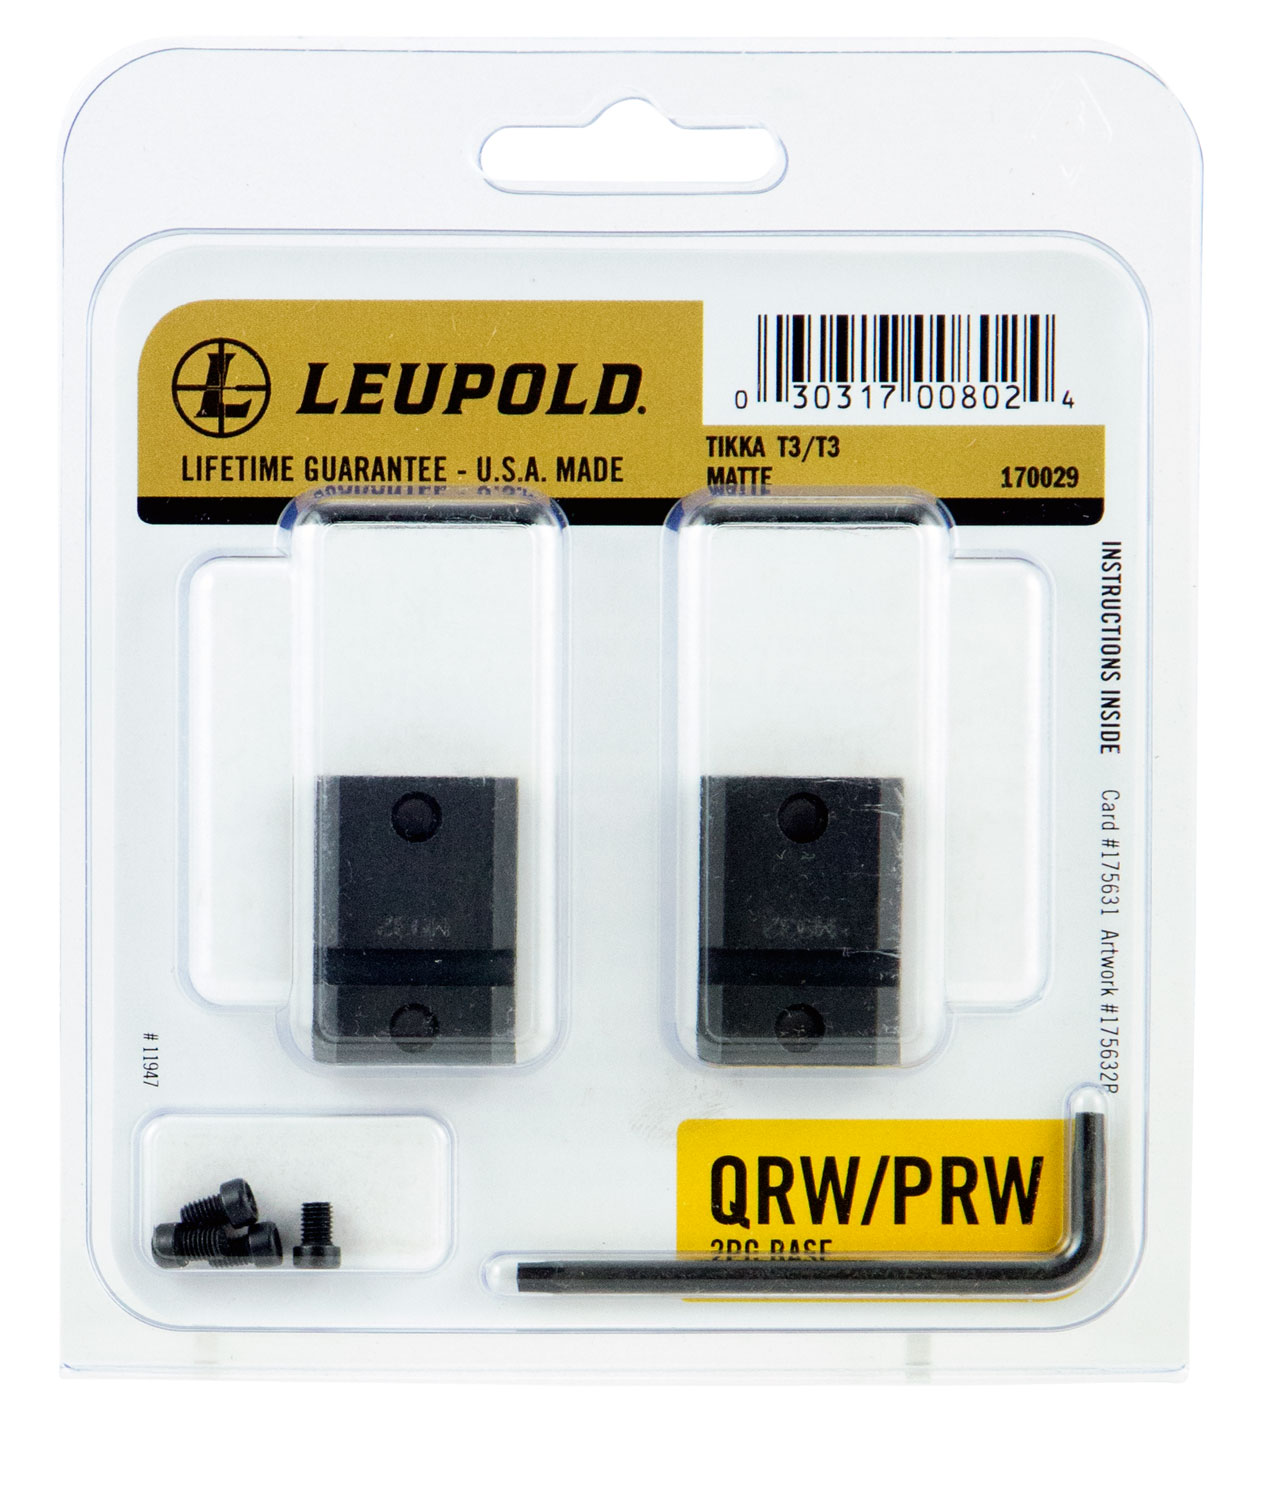 Leupold 170029 QRW 2-Piece Base For Tikka T3/T3x Weaver Style Black Matte Finish